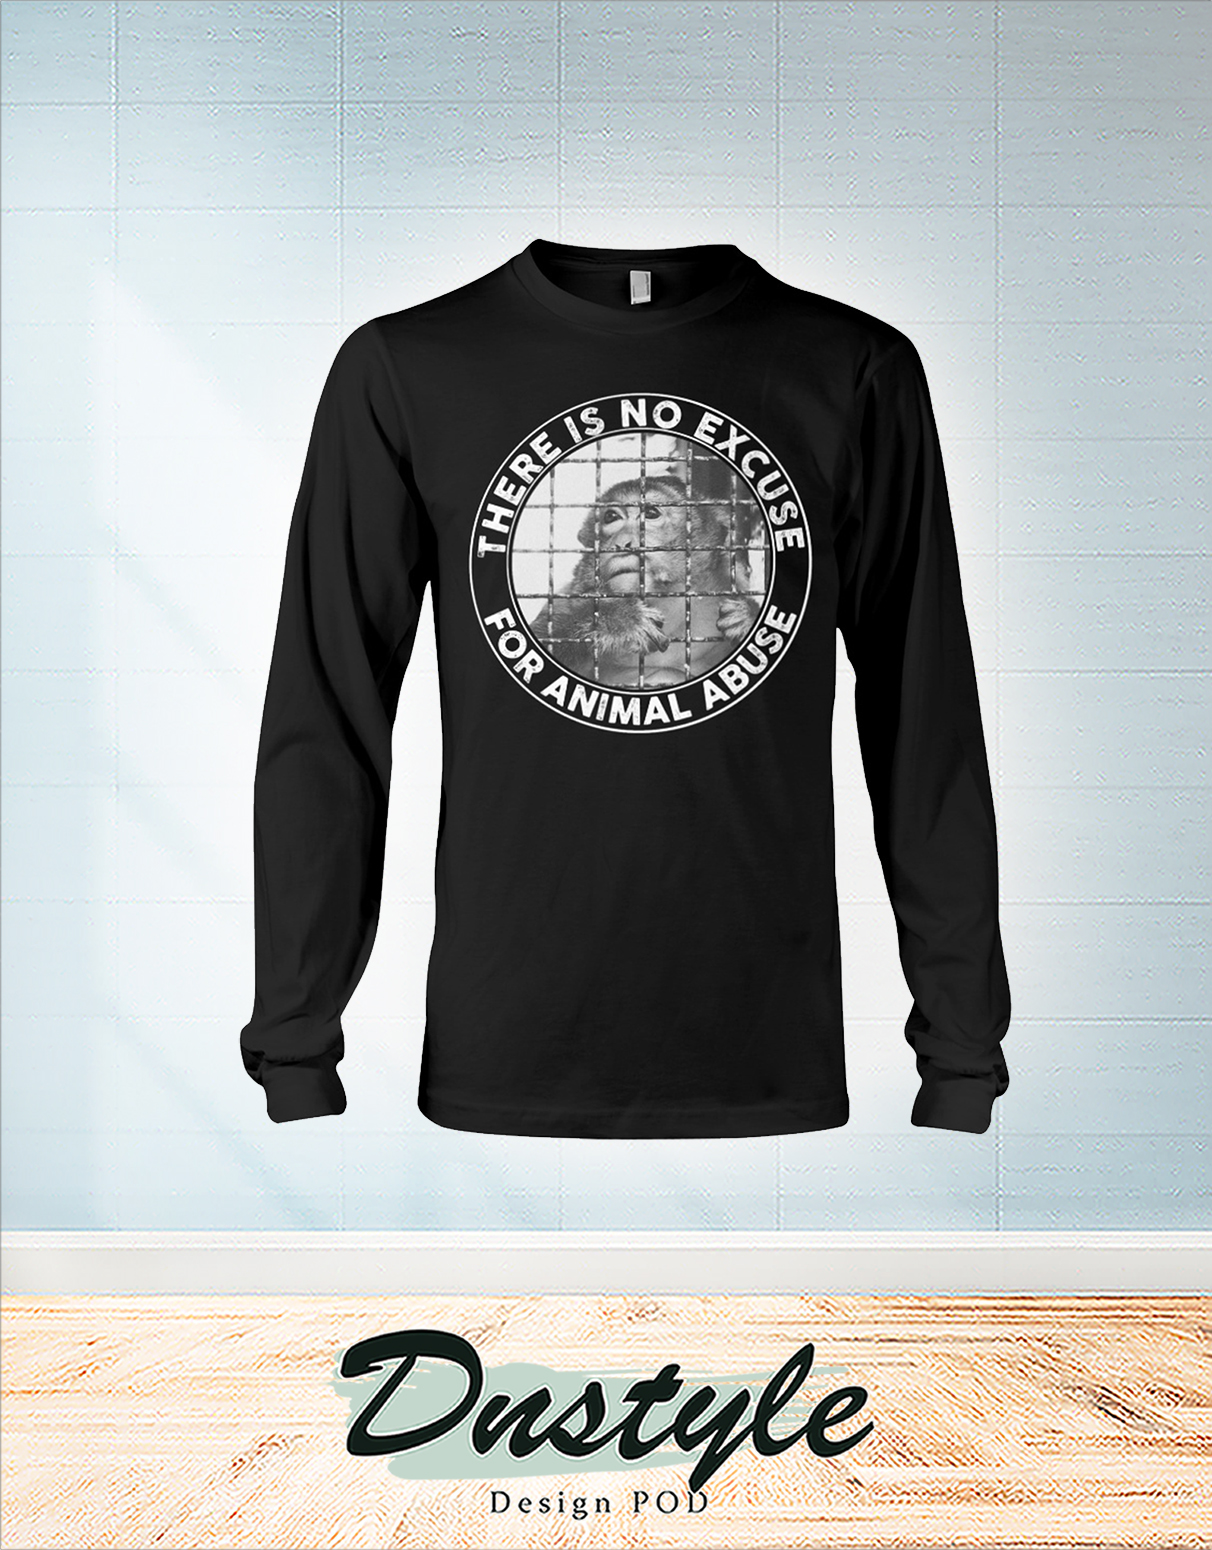 Vegan there is no excuse for animal abuse long sleeve